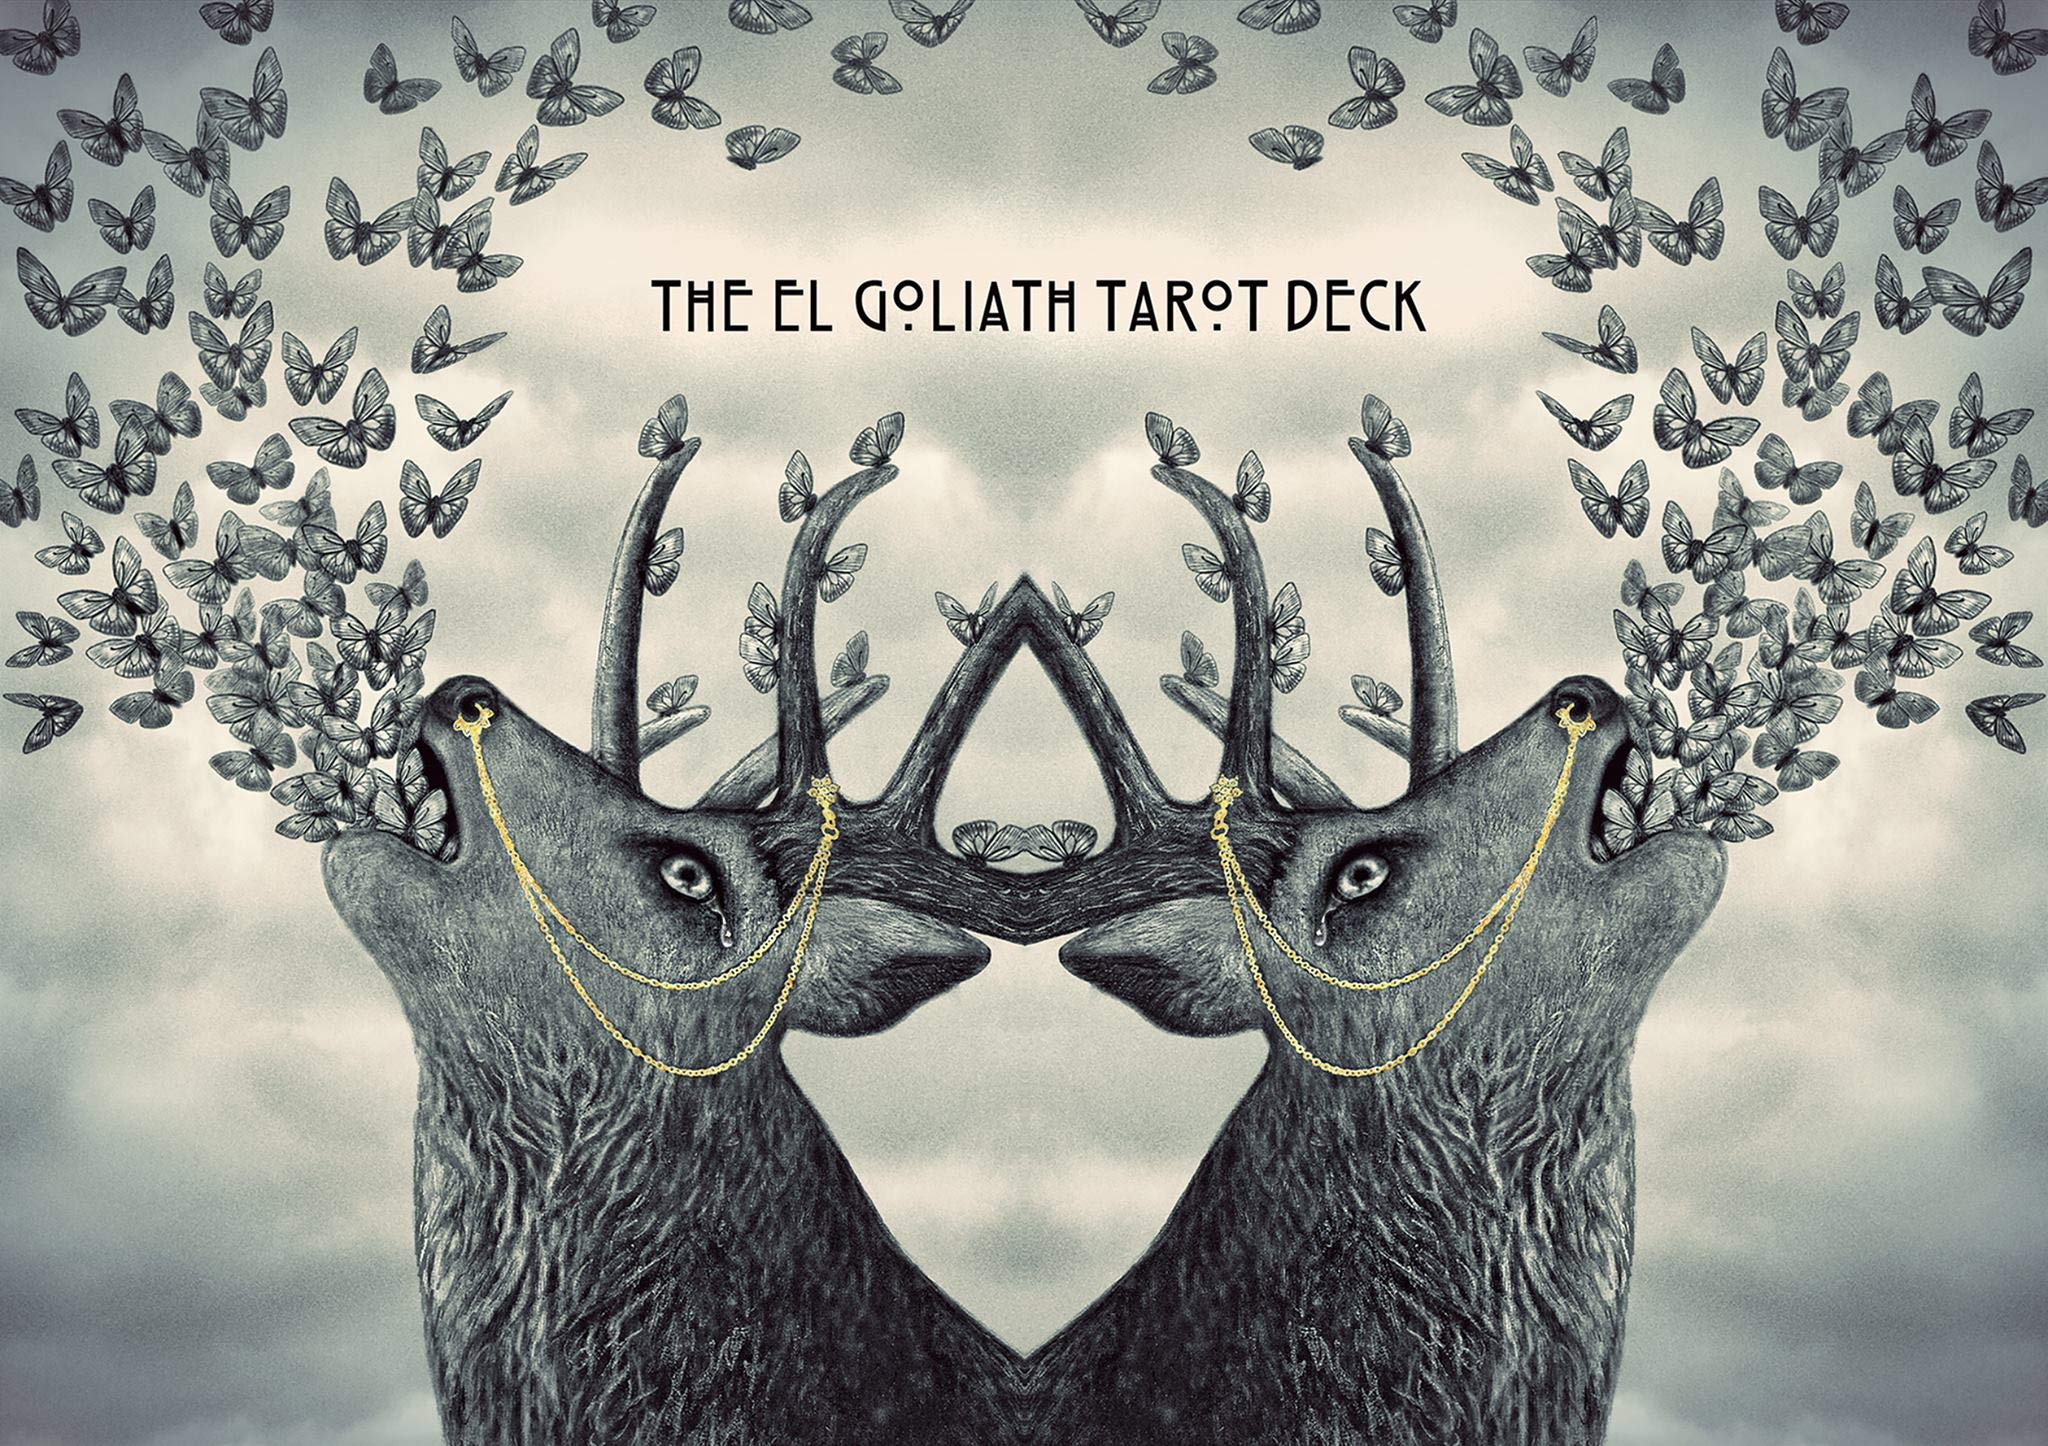 El Goliath Tarot Deck